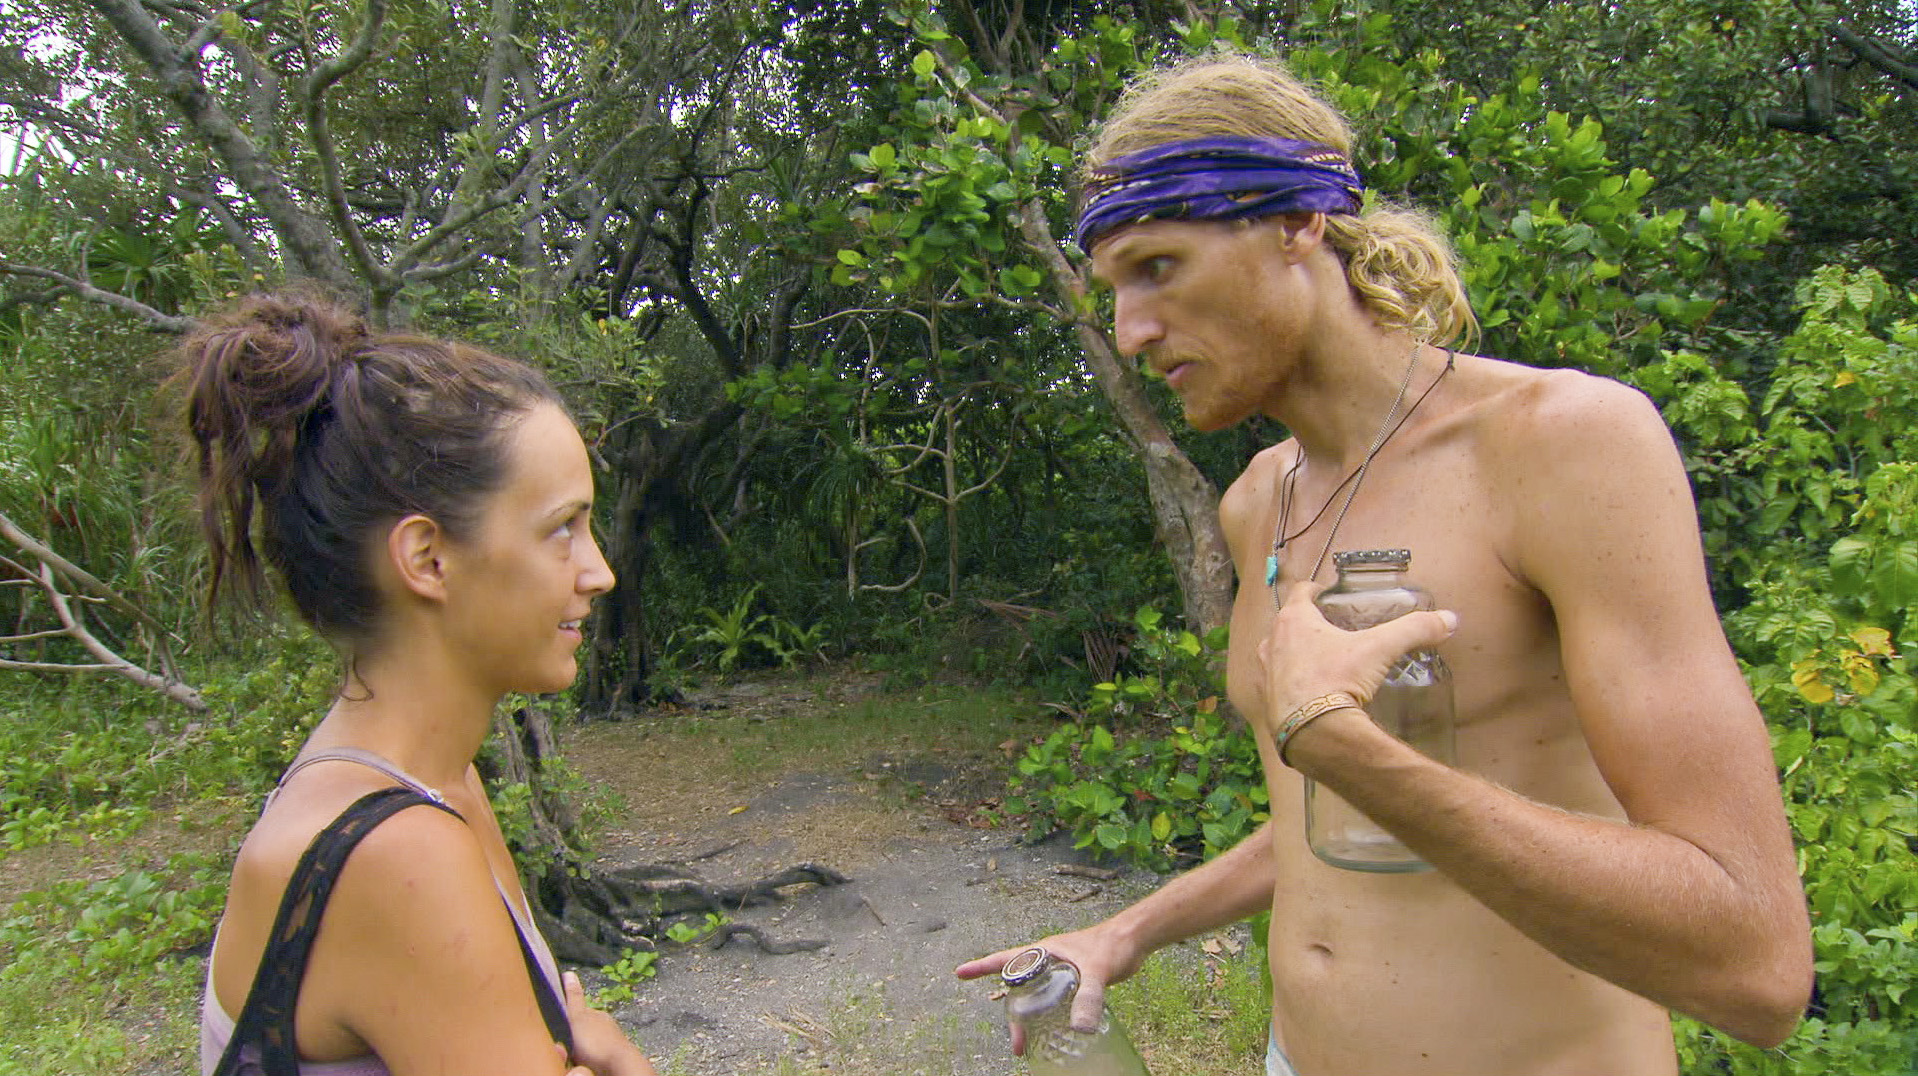 Ciera and Tyson chat in Season 27 Episode 10